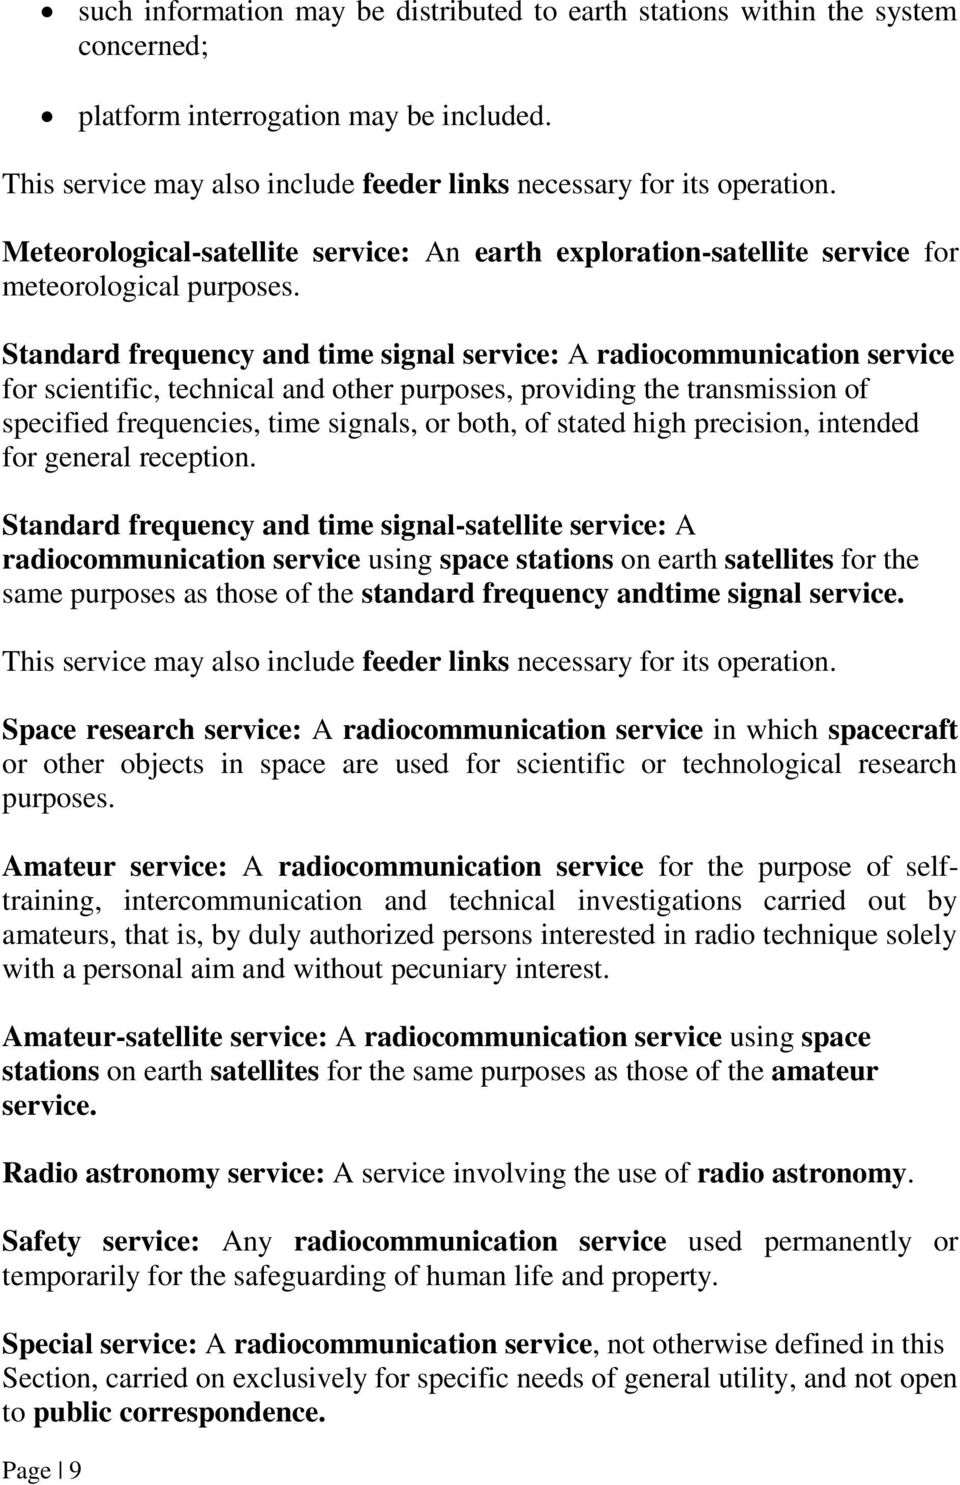 Standard frequency and time signal service: A radiocommunication service for scientific, technical and other purposes, providing the transmission of specified frequencies, time signals, or both, of